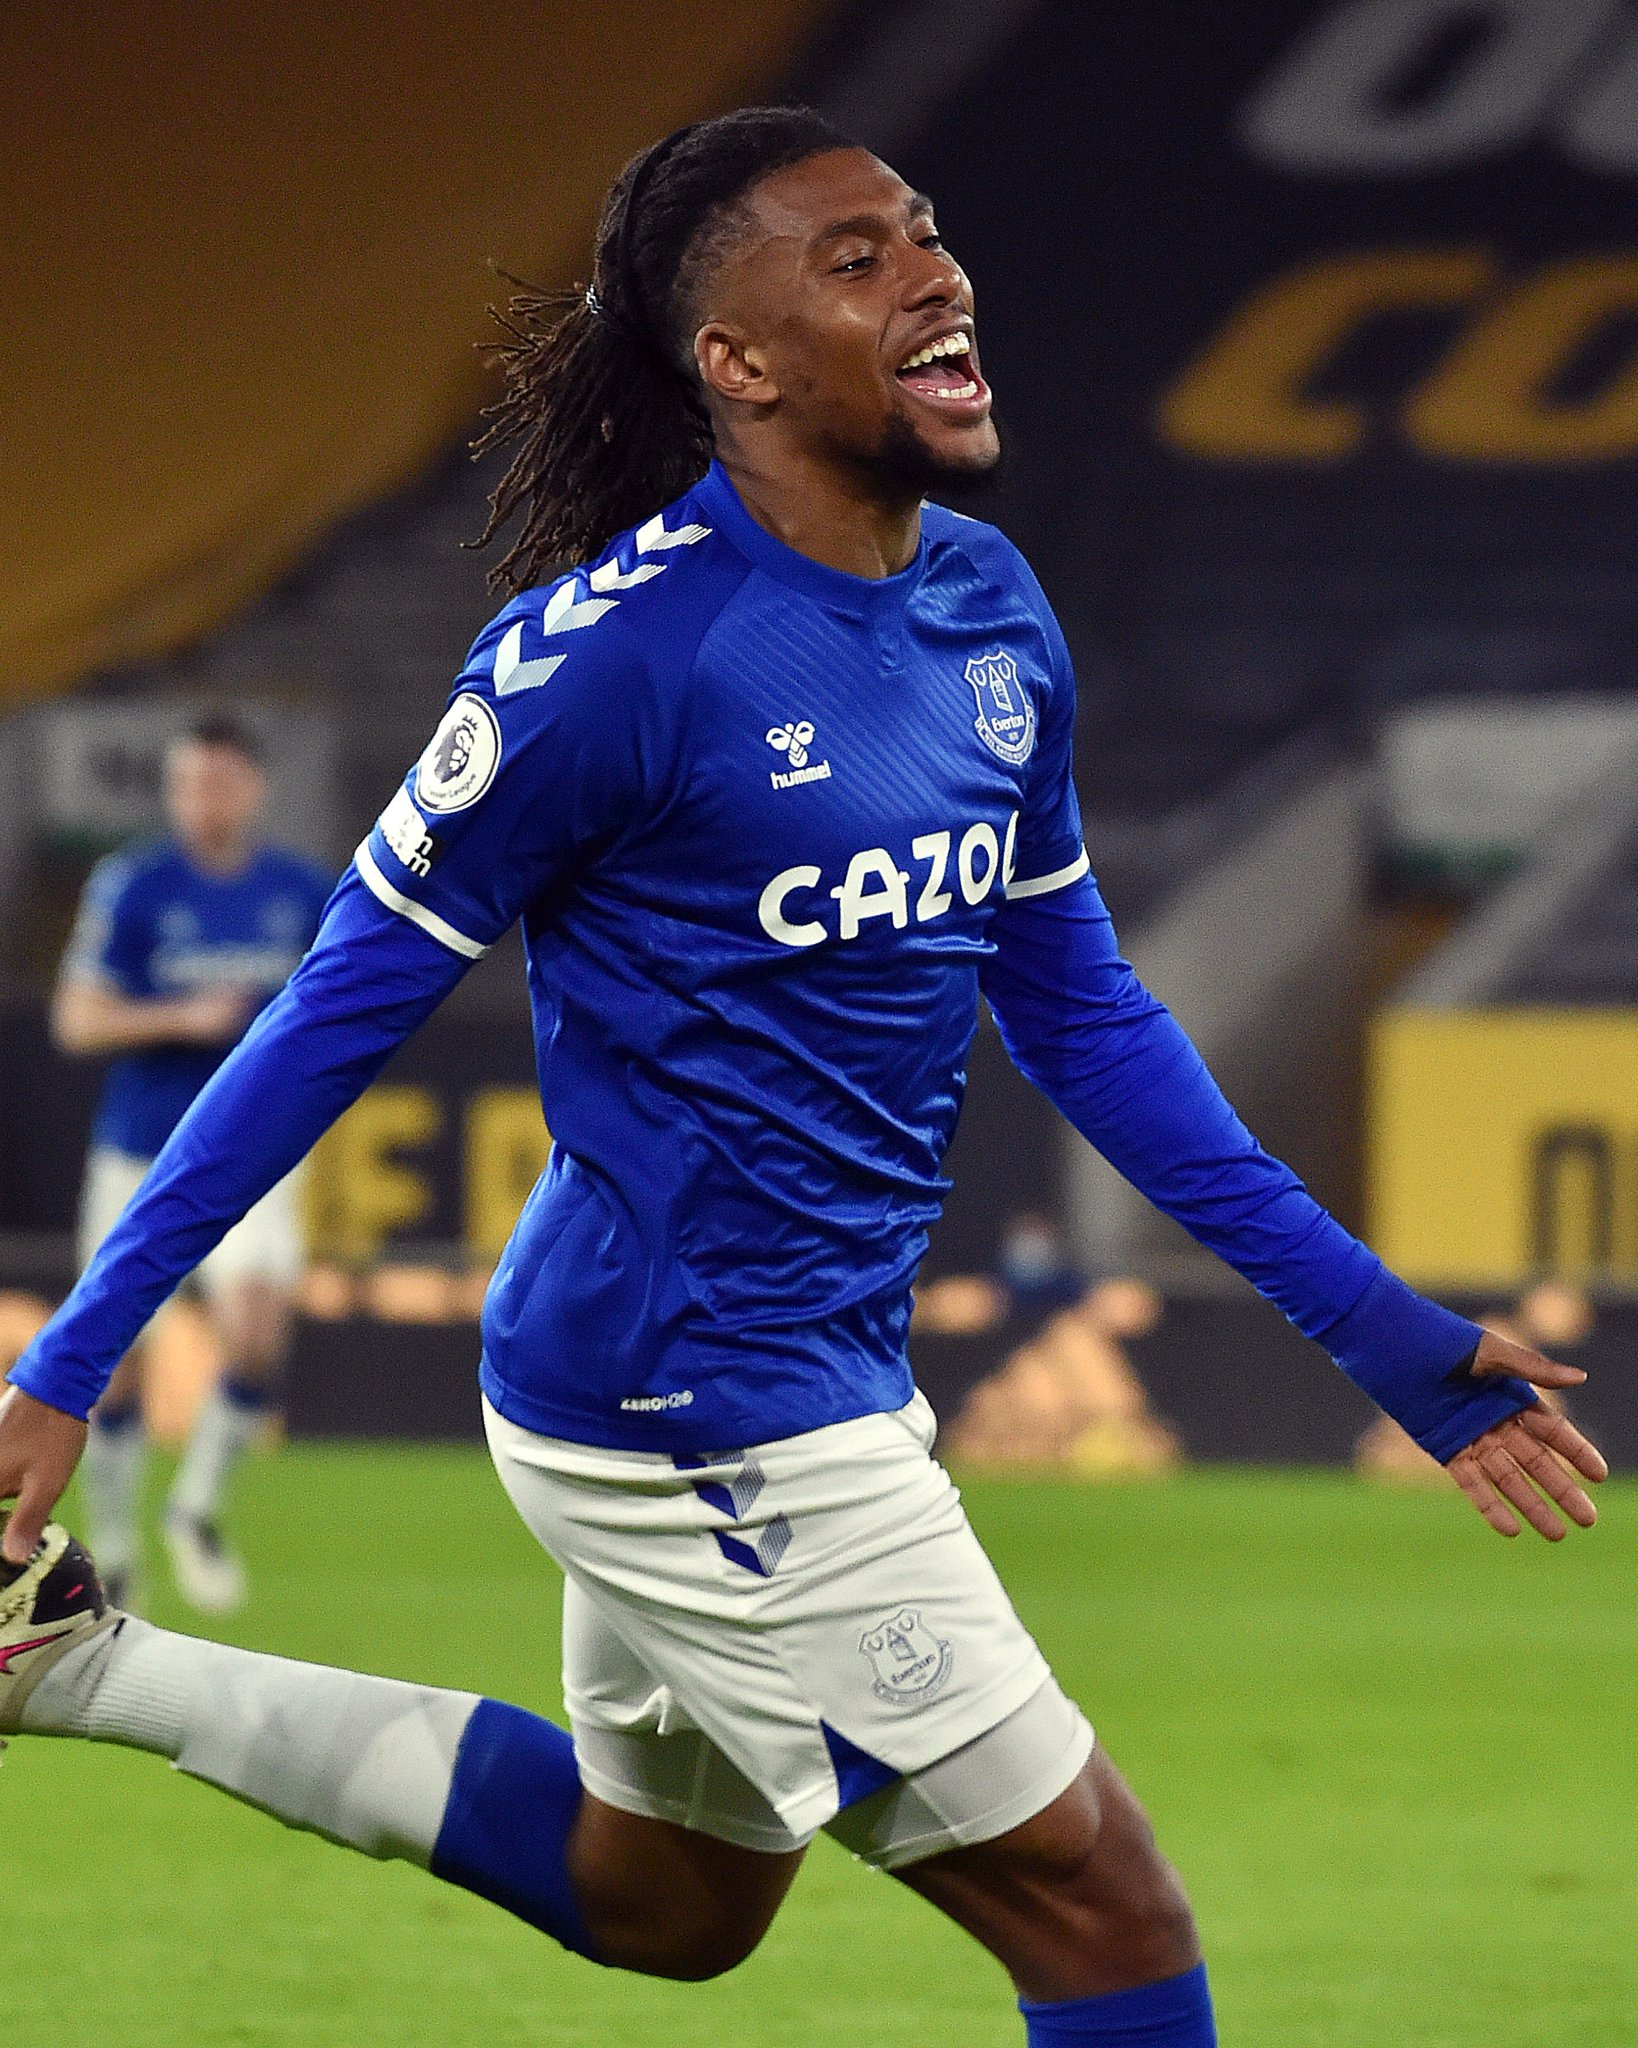 Premier League: Iwobi On Target In Everton's Win At Wolves; Man United Beat Burnley To Go Top